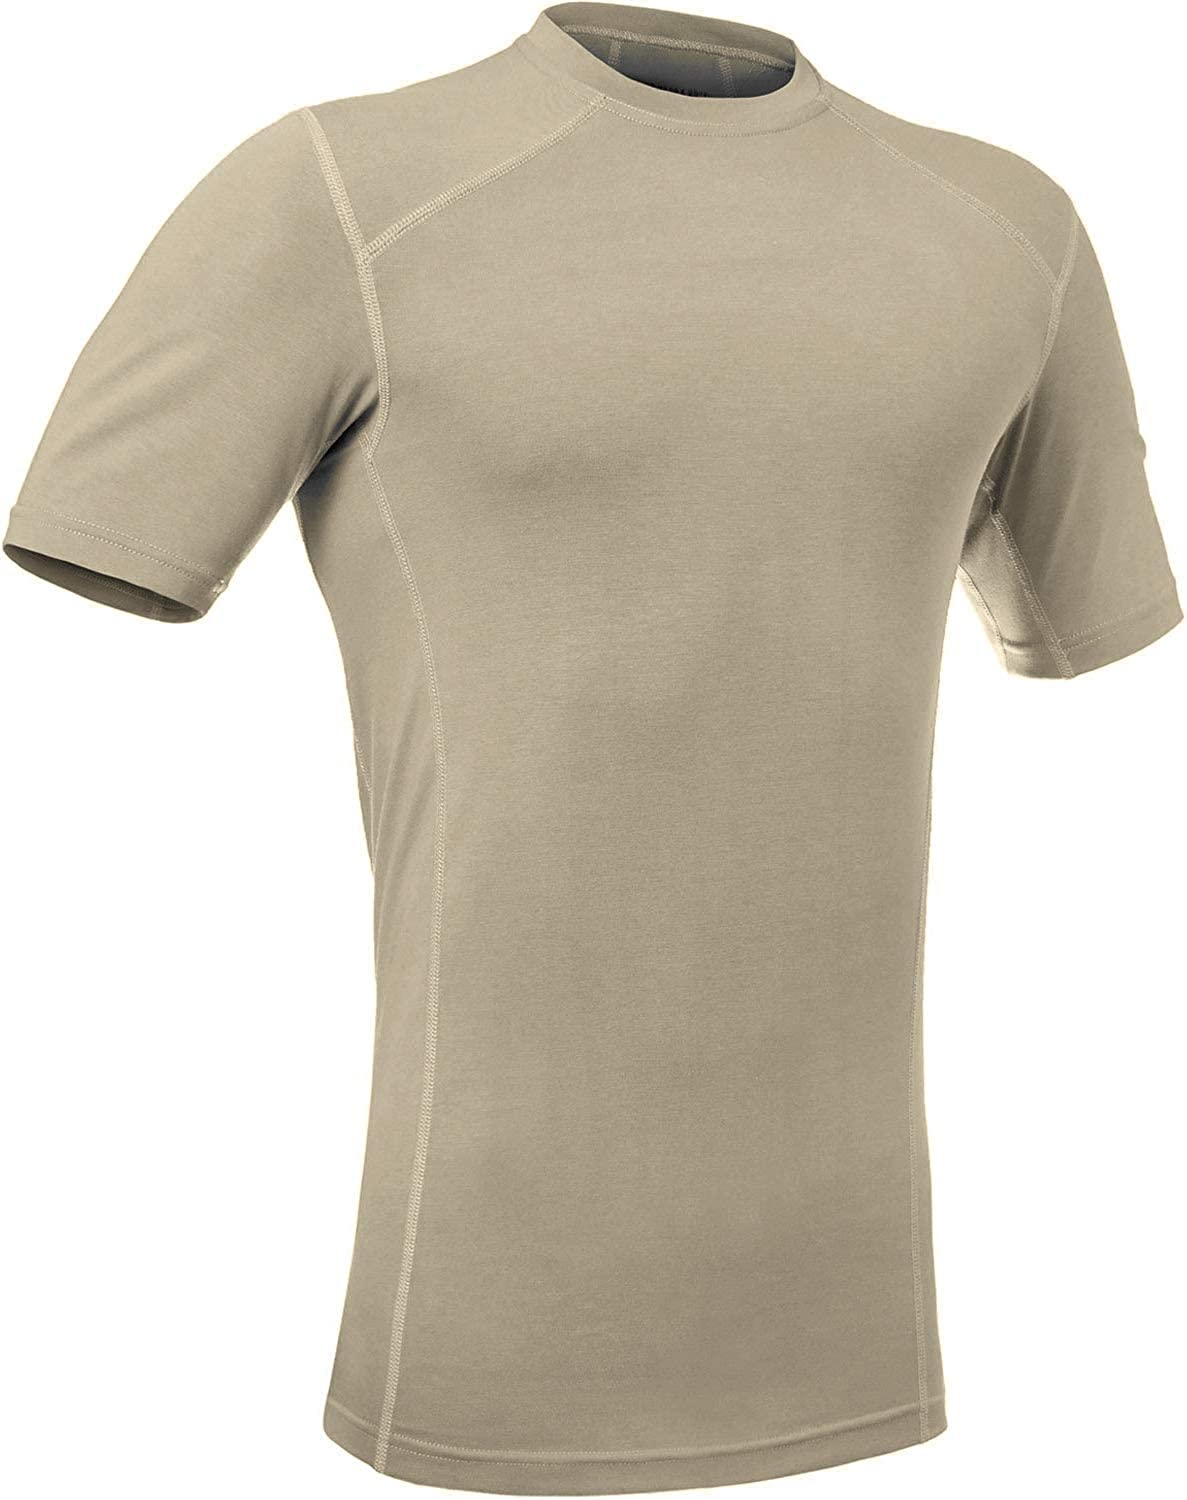 281Z Tactical Stretch Cotton Underwear T-Shirt - Punisher Combat Line - Military